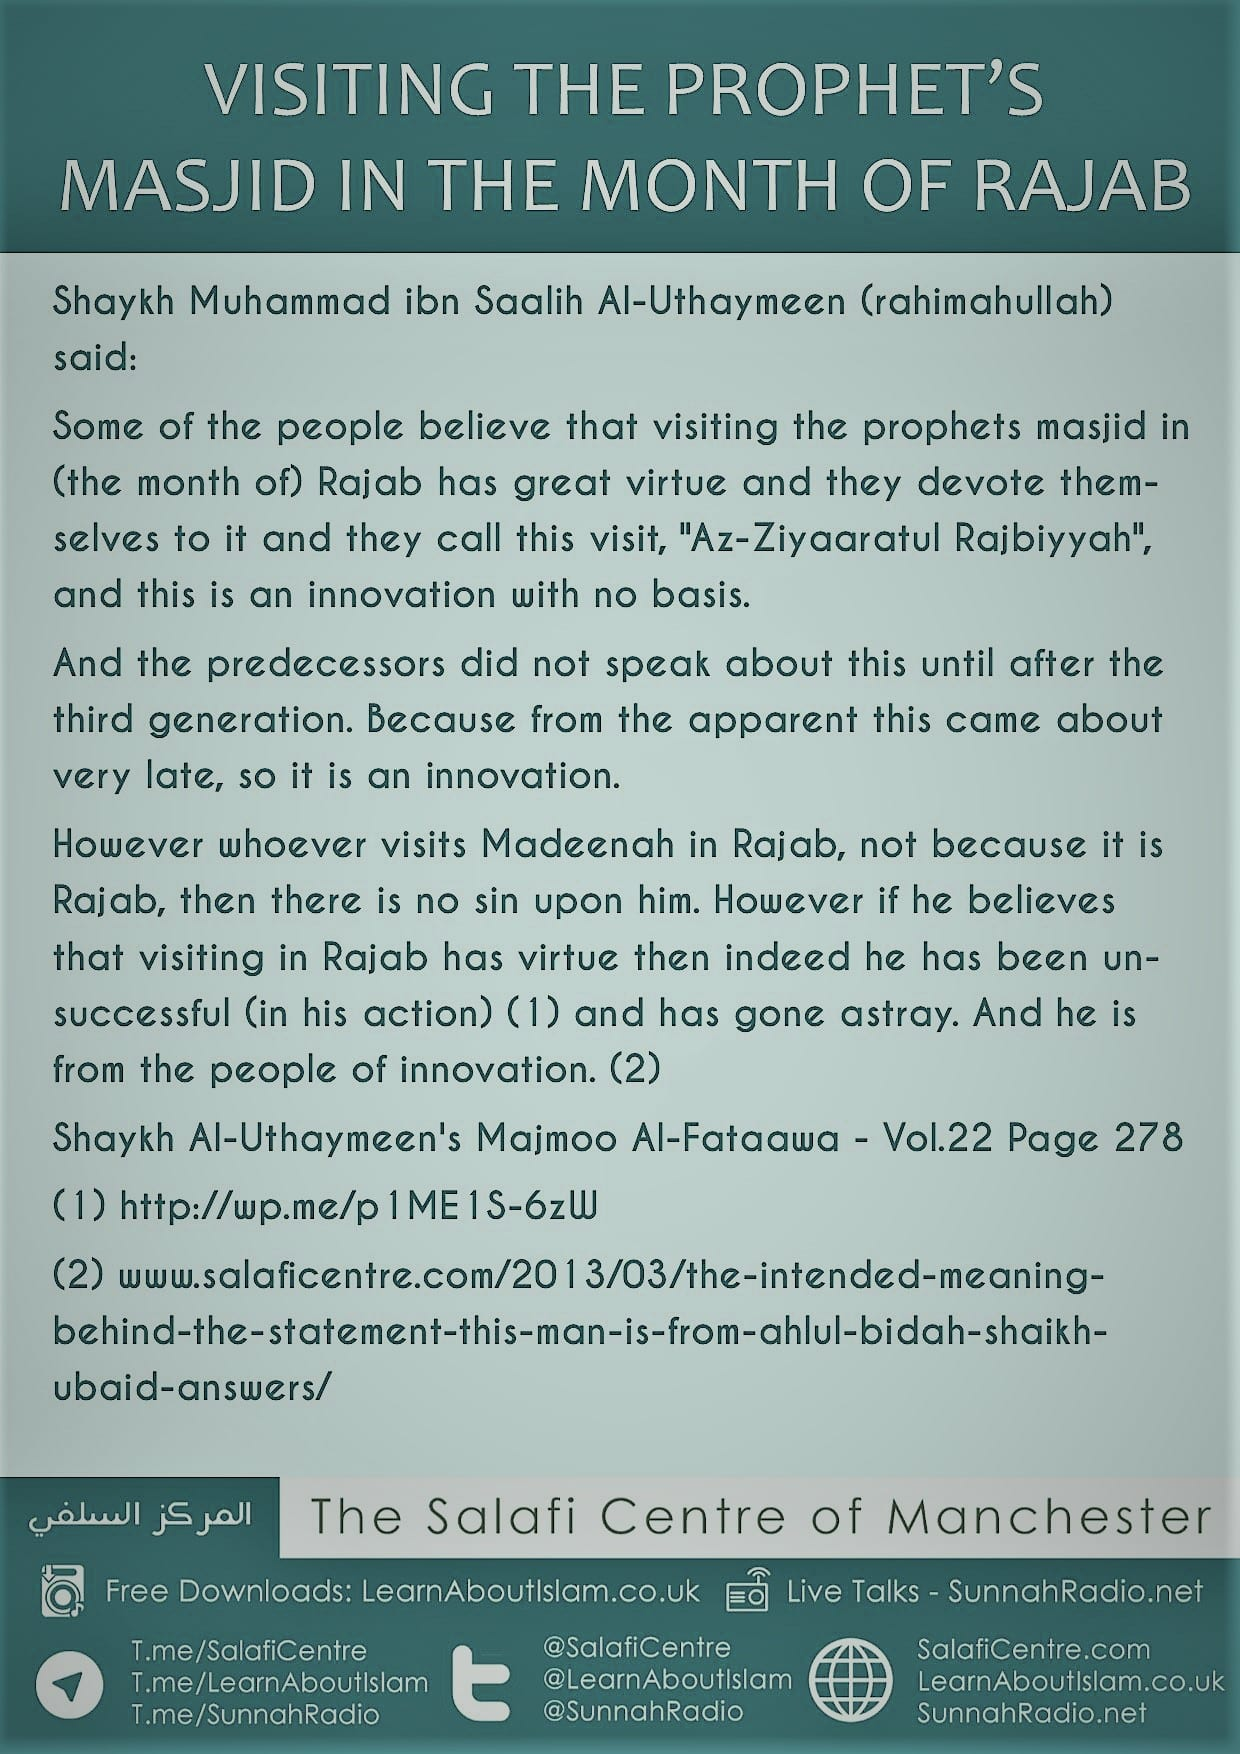 Ruling on Visiting The Prophet's Masjid in the Month of Rajab – Shaykh Al-Uthaymeen